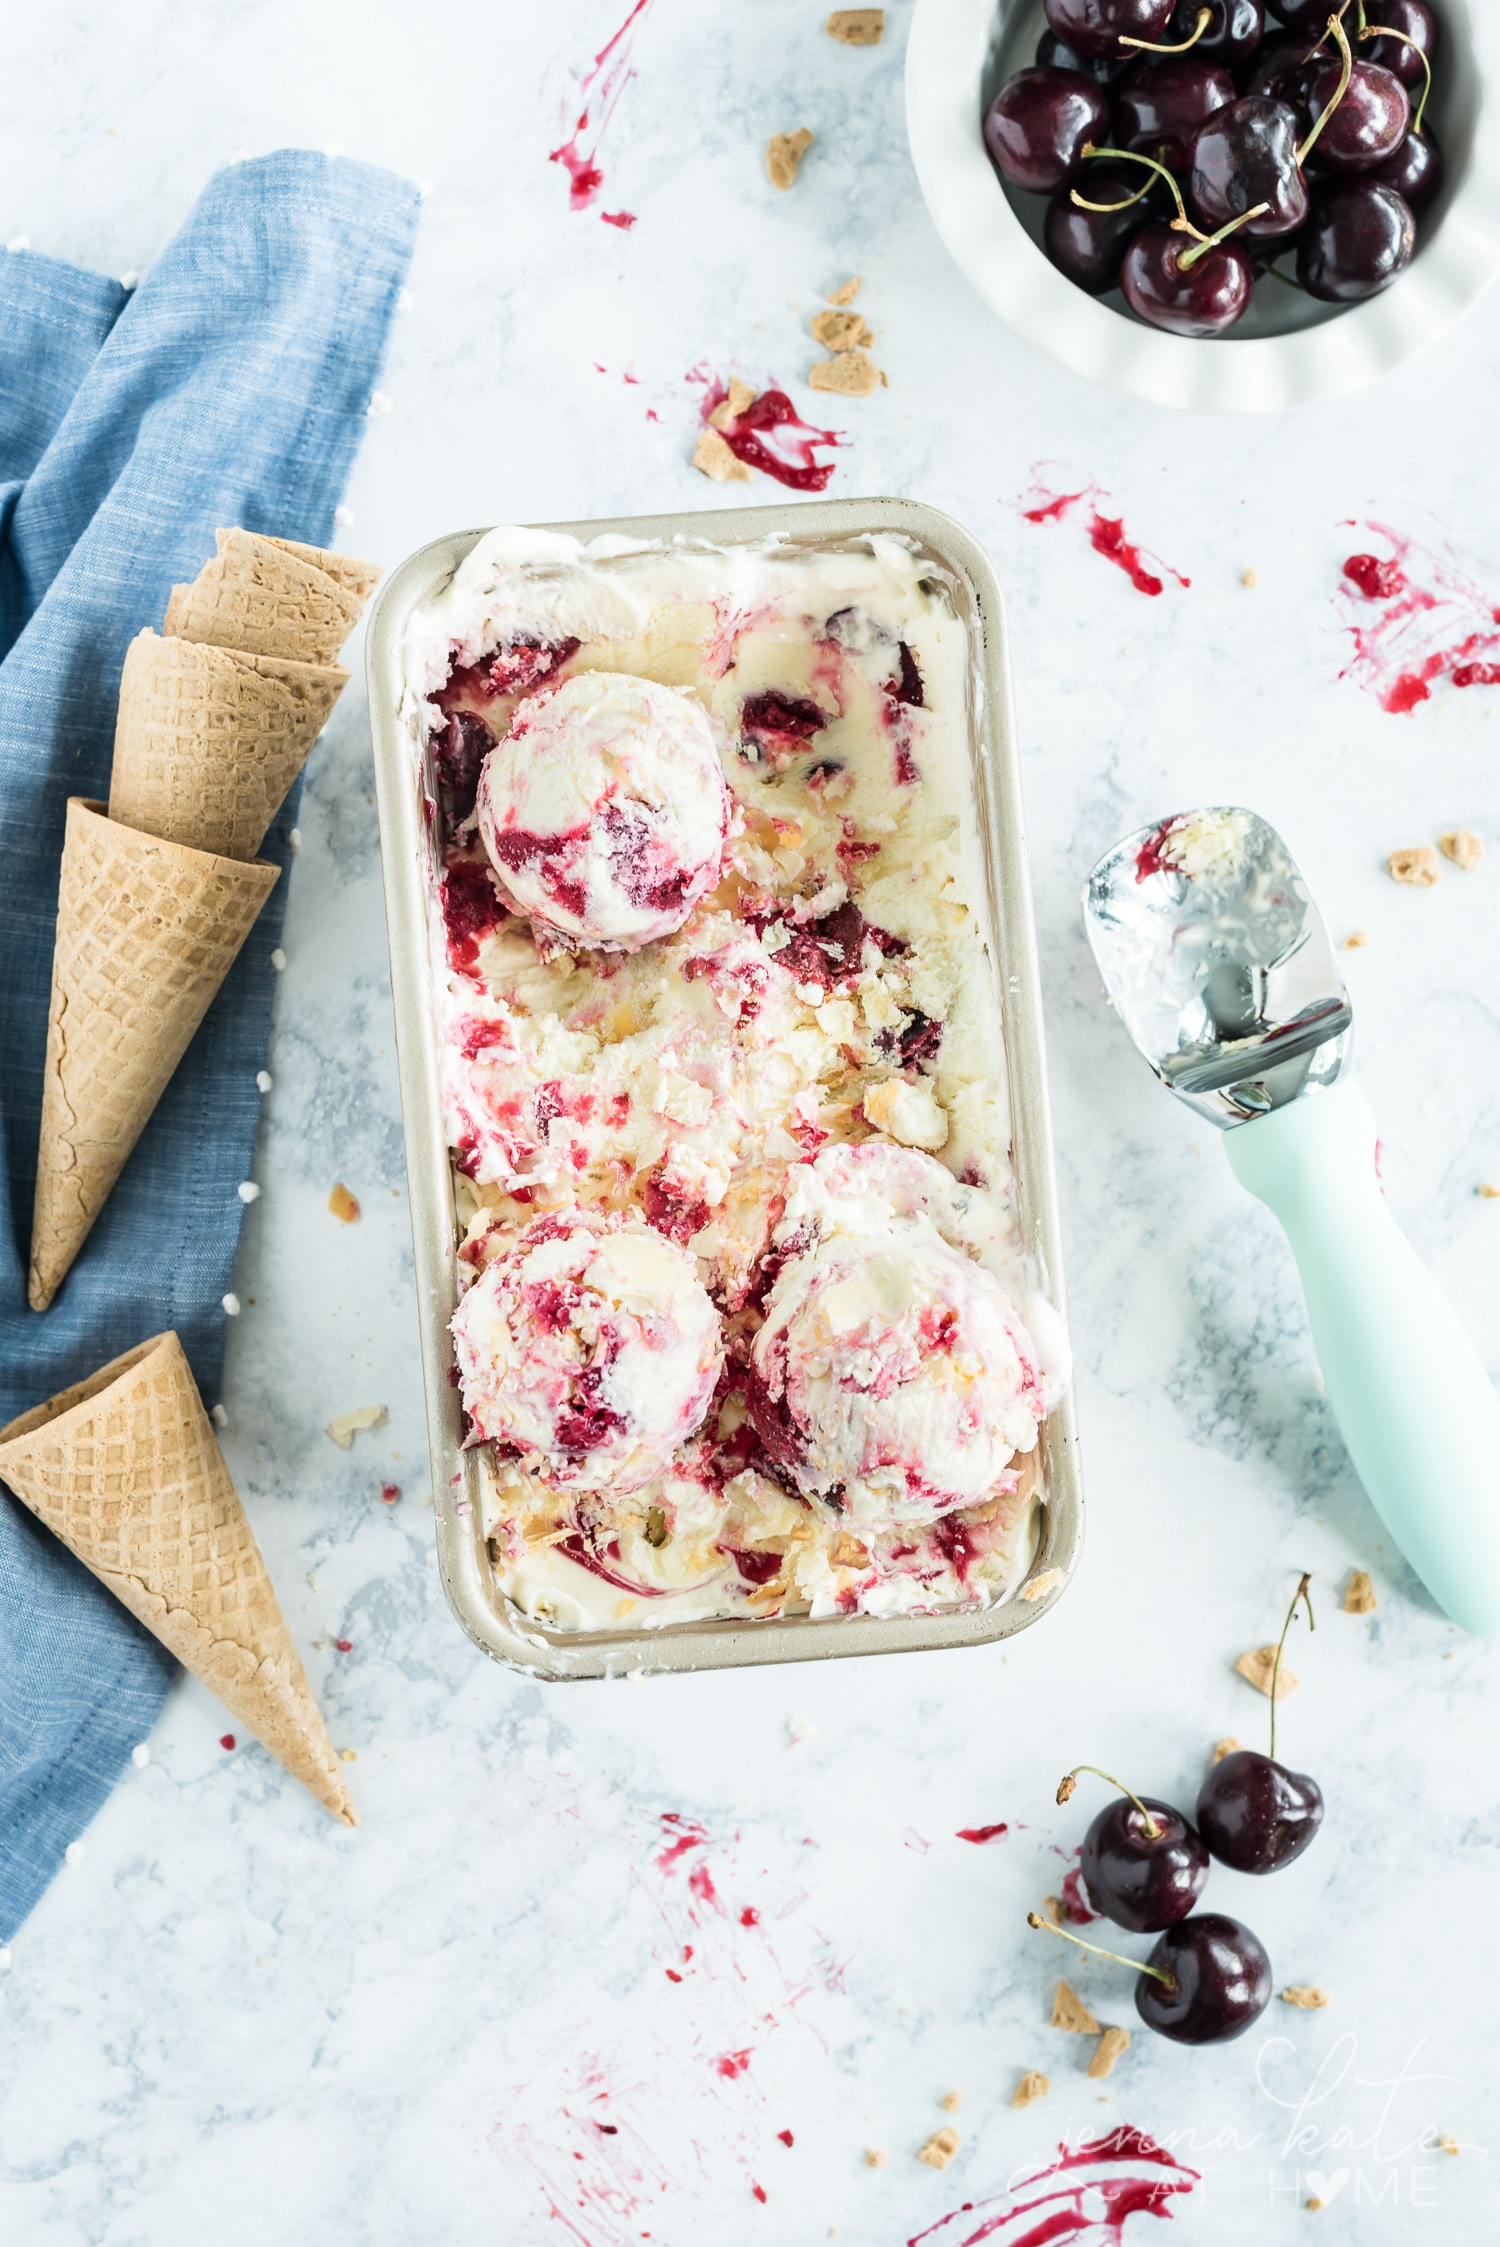 Overhead shot of cherry pie ice cream with scooped ice cream in the loaf pan full of ice cream